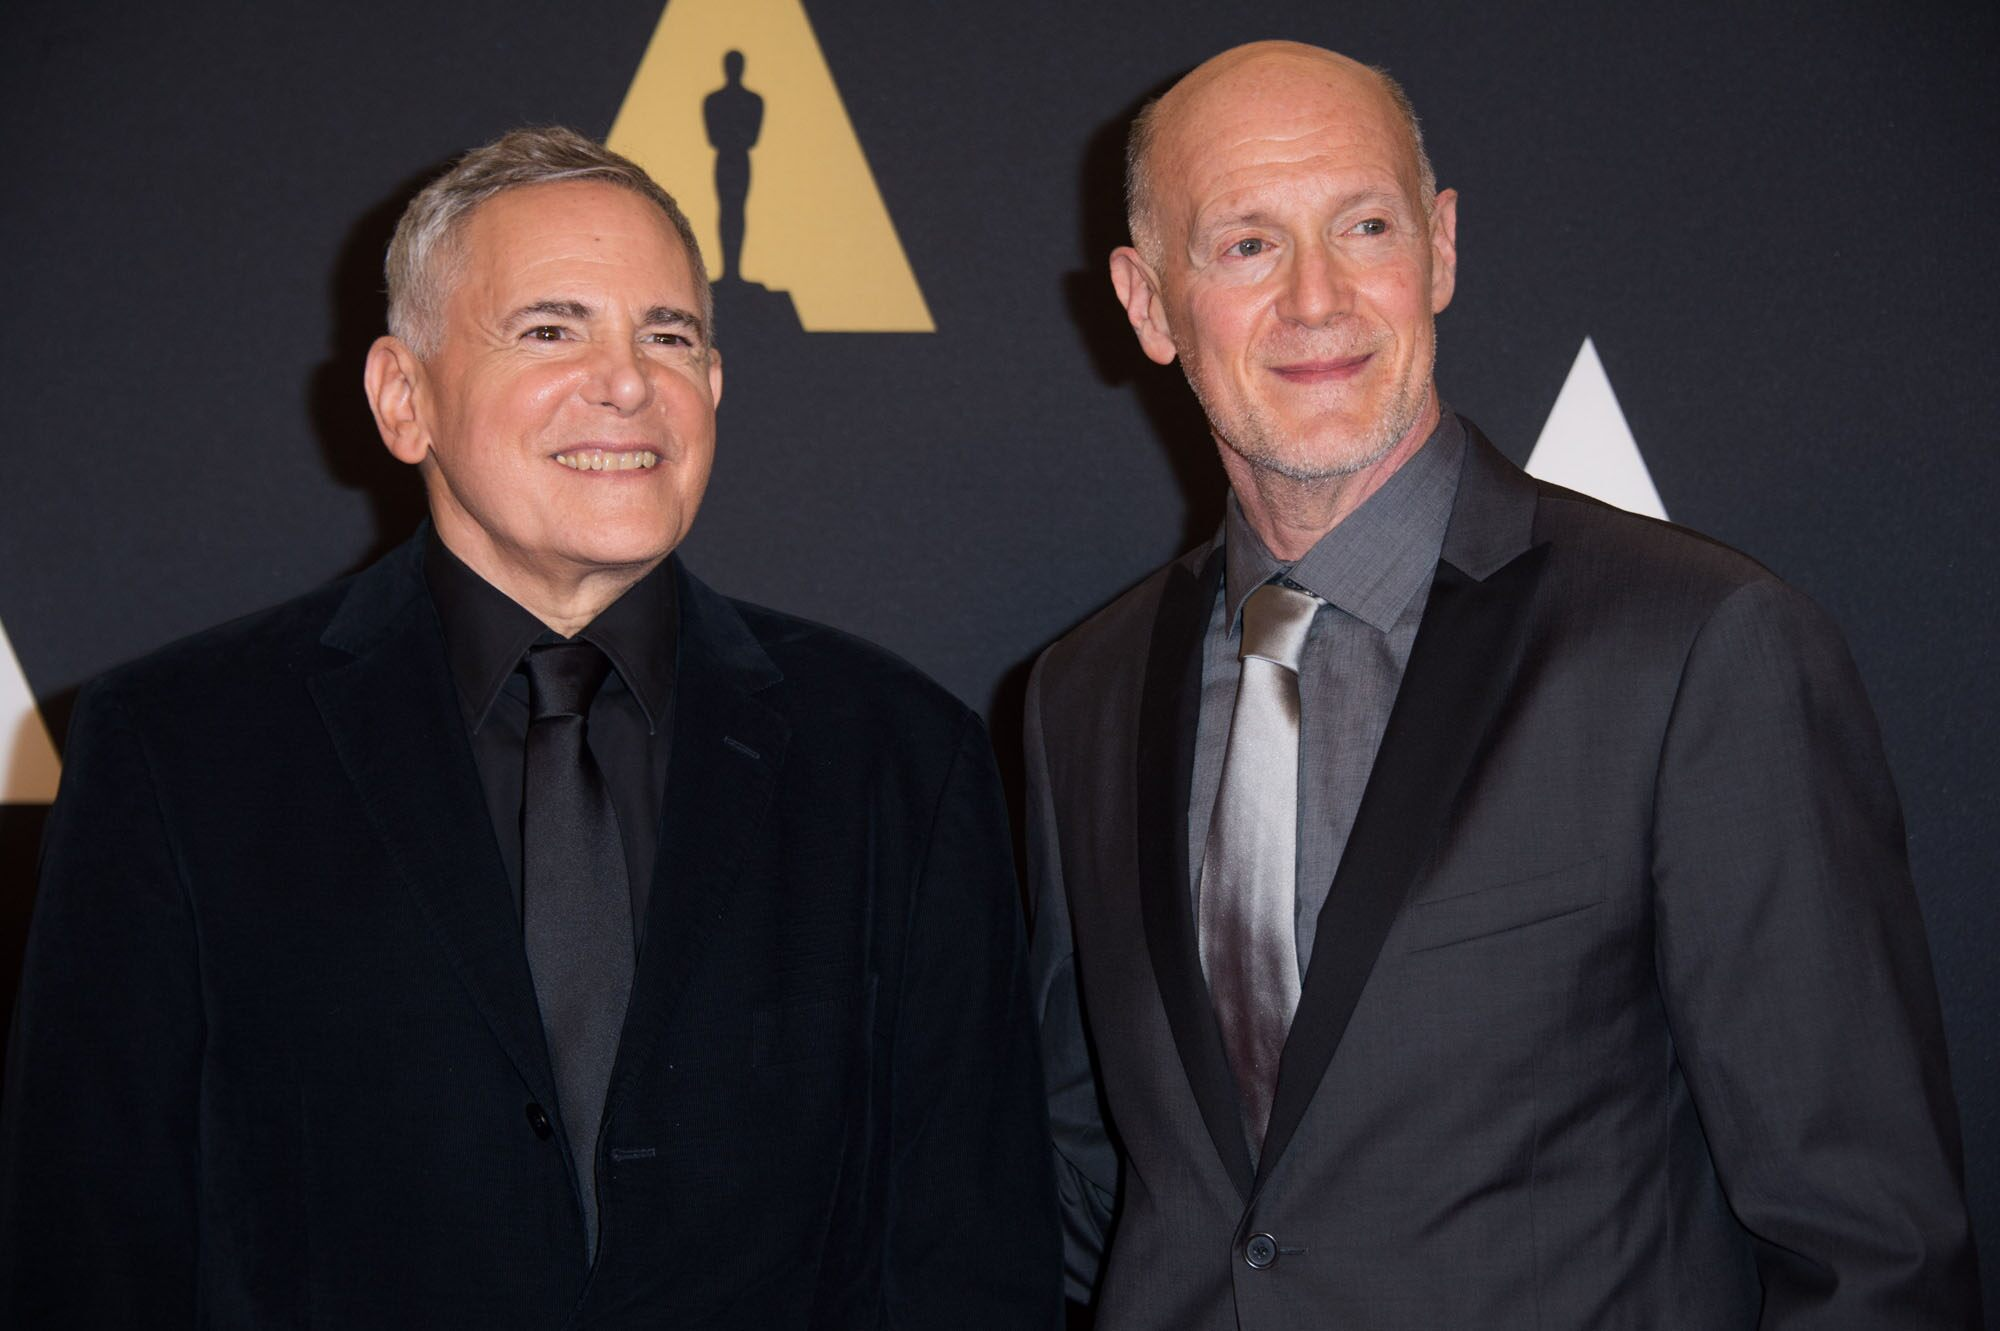 Oscar Producers Craig Zadan (left) and Neil Meron at the 6th Annual Governors Awards